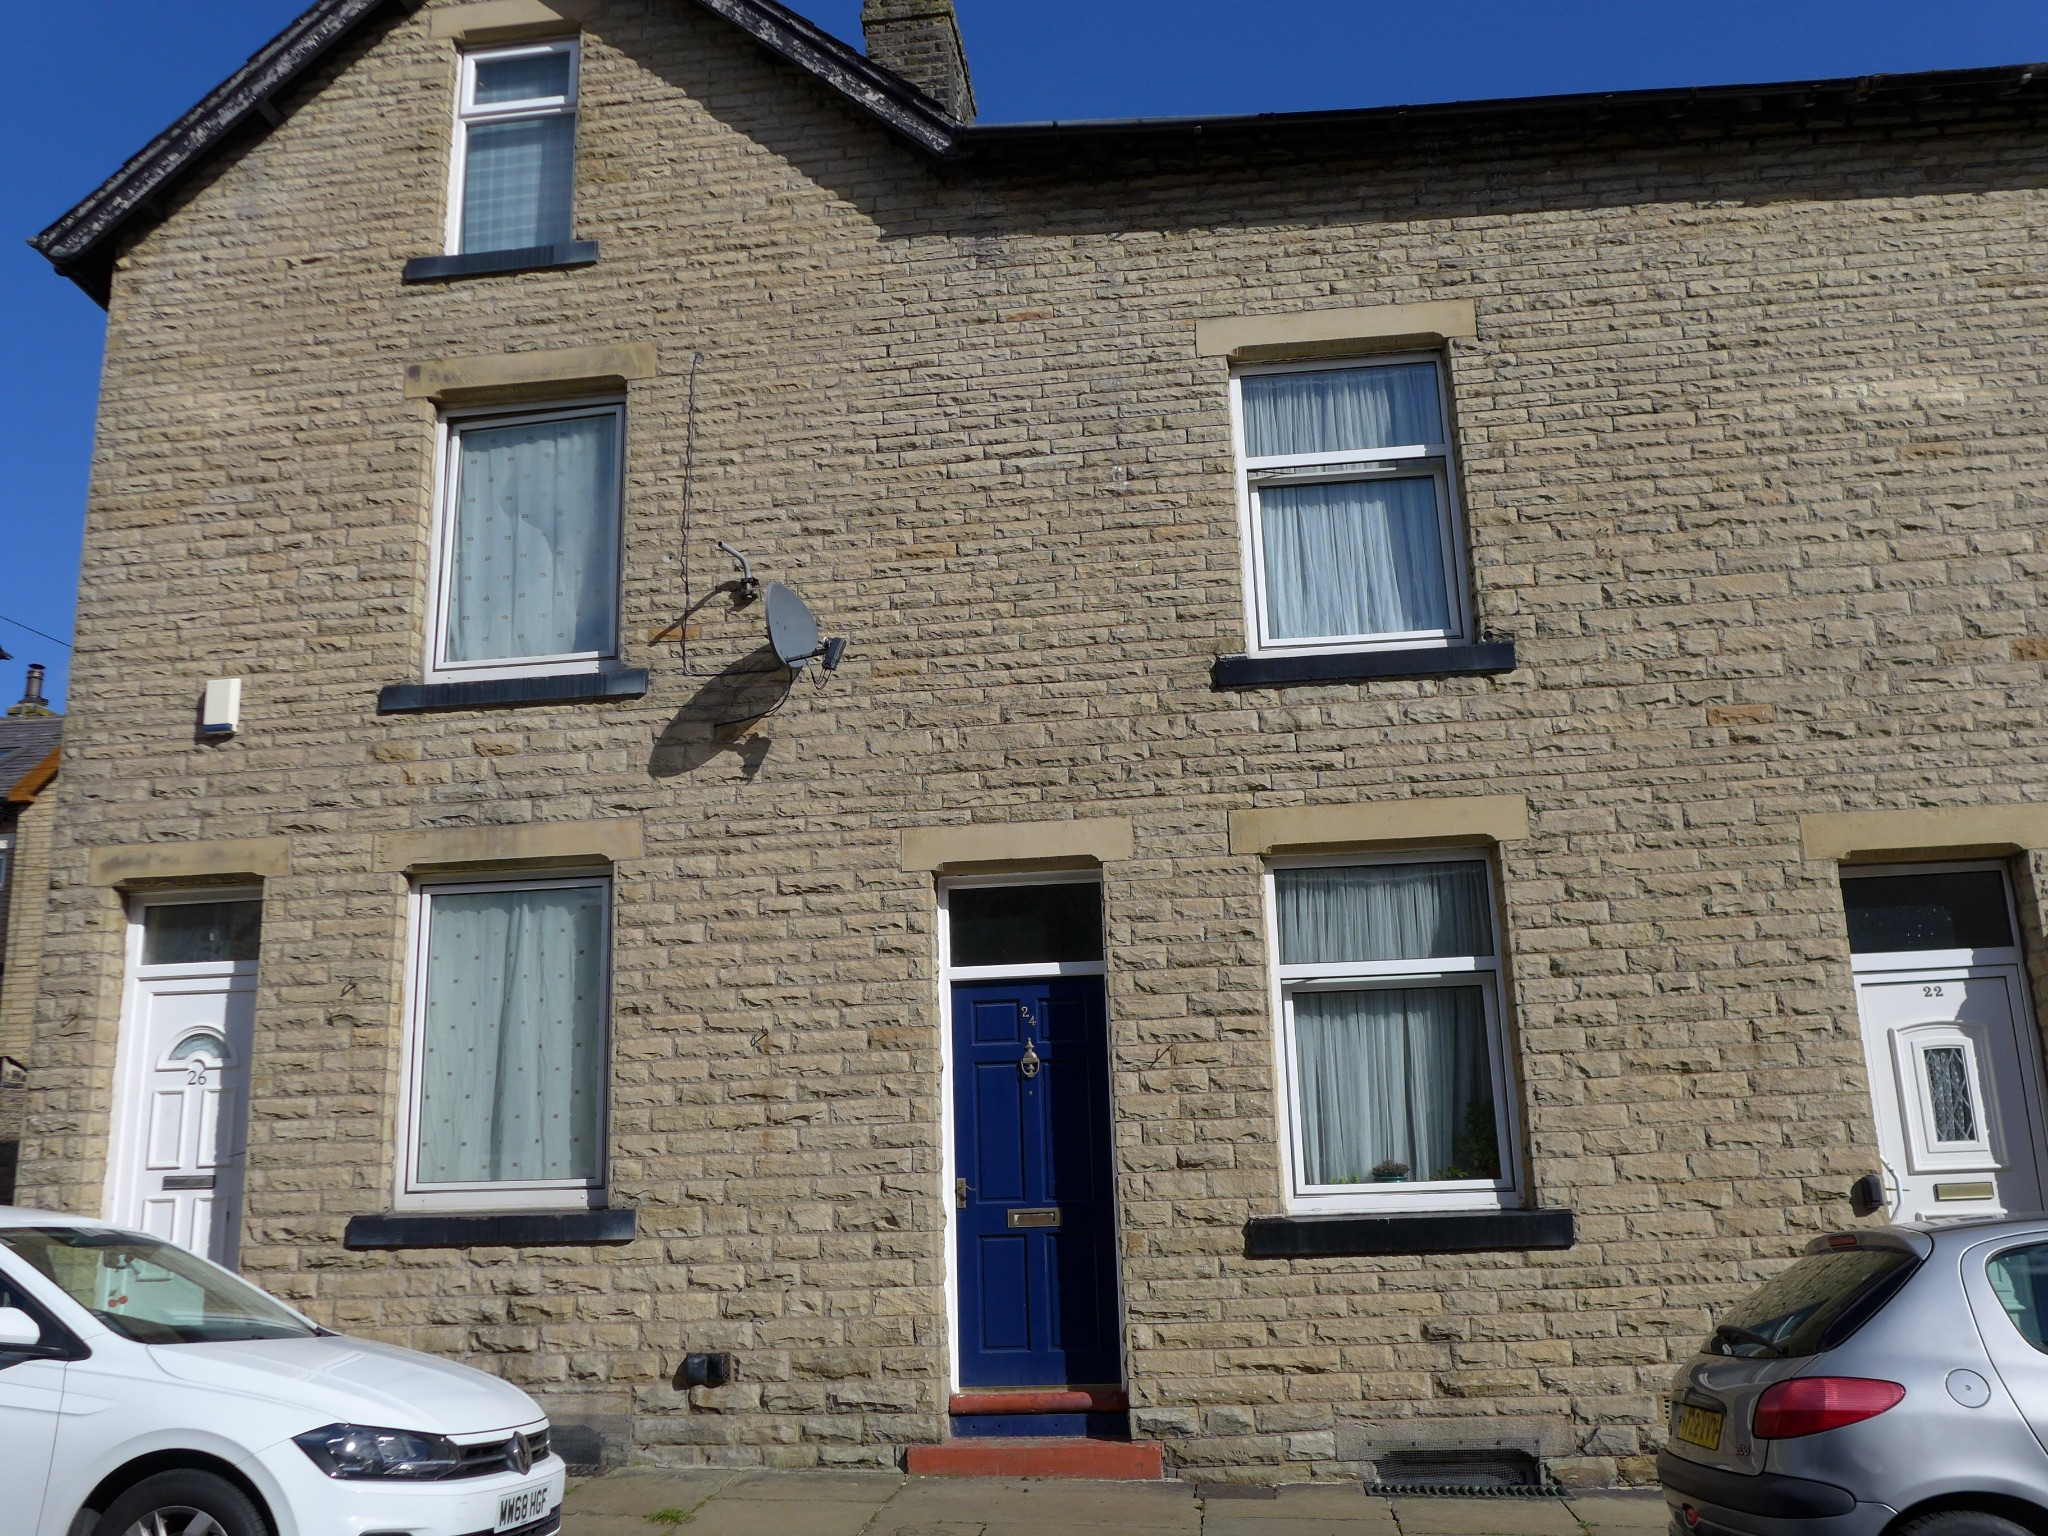 3 bedroom mid terraced house For Sale in Todmorden - Photograph 1.